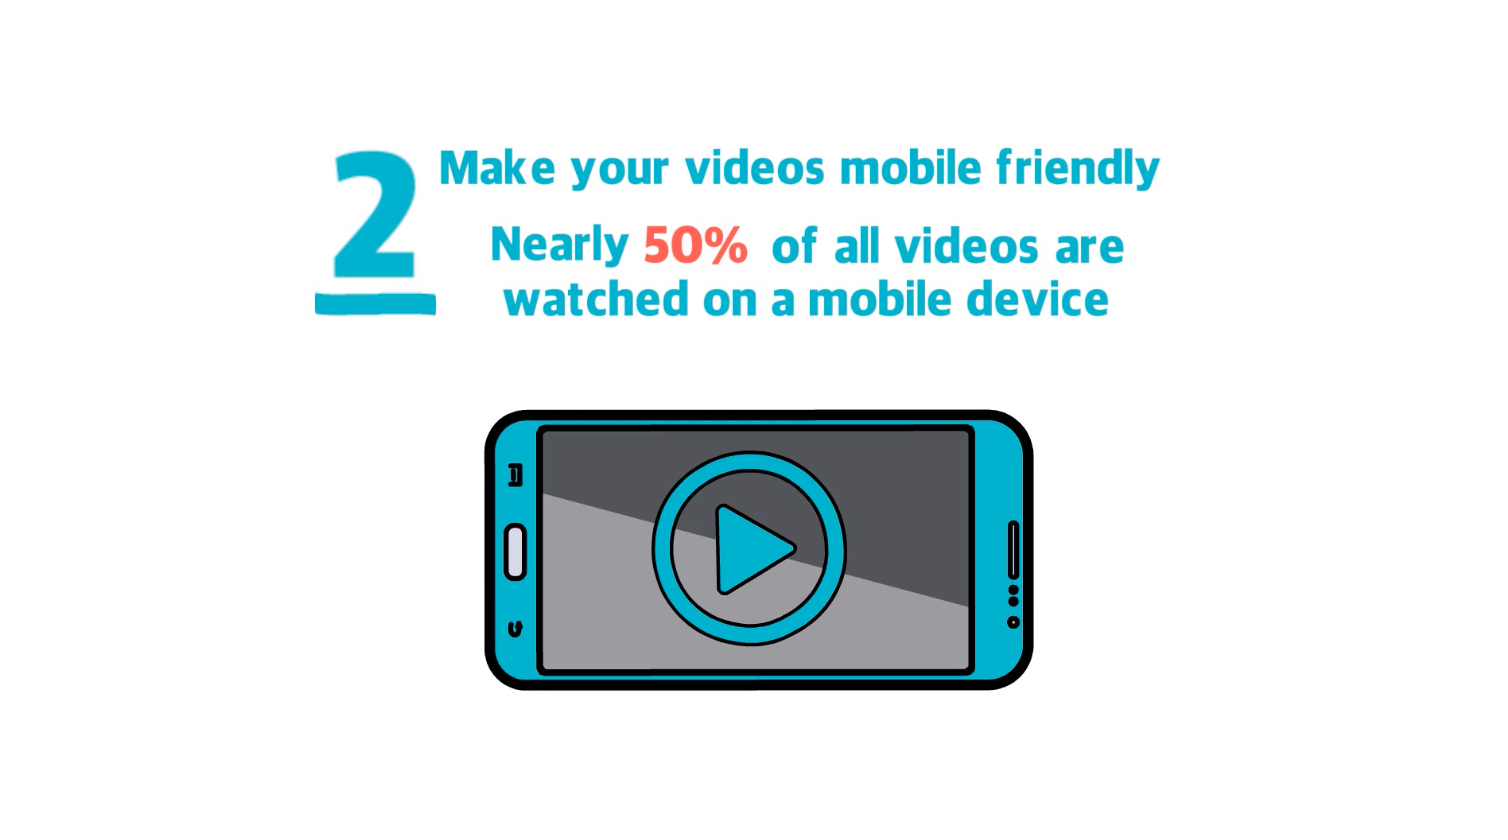 Make your videos mobile friendly to improve results